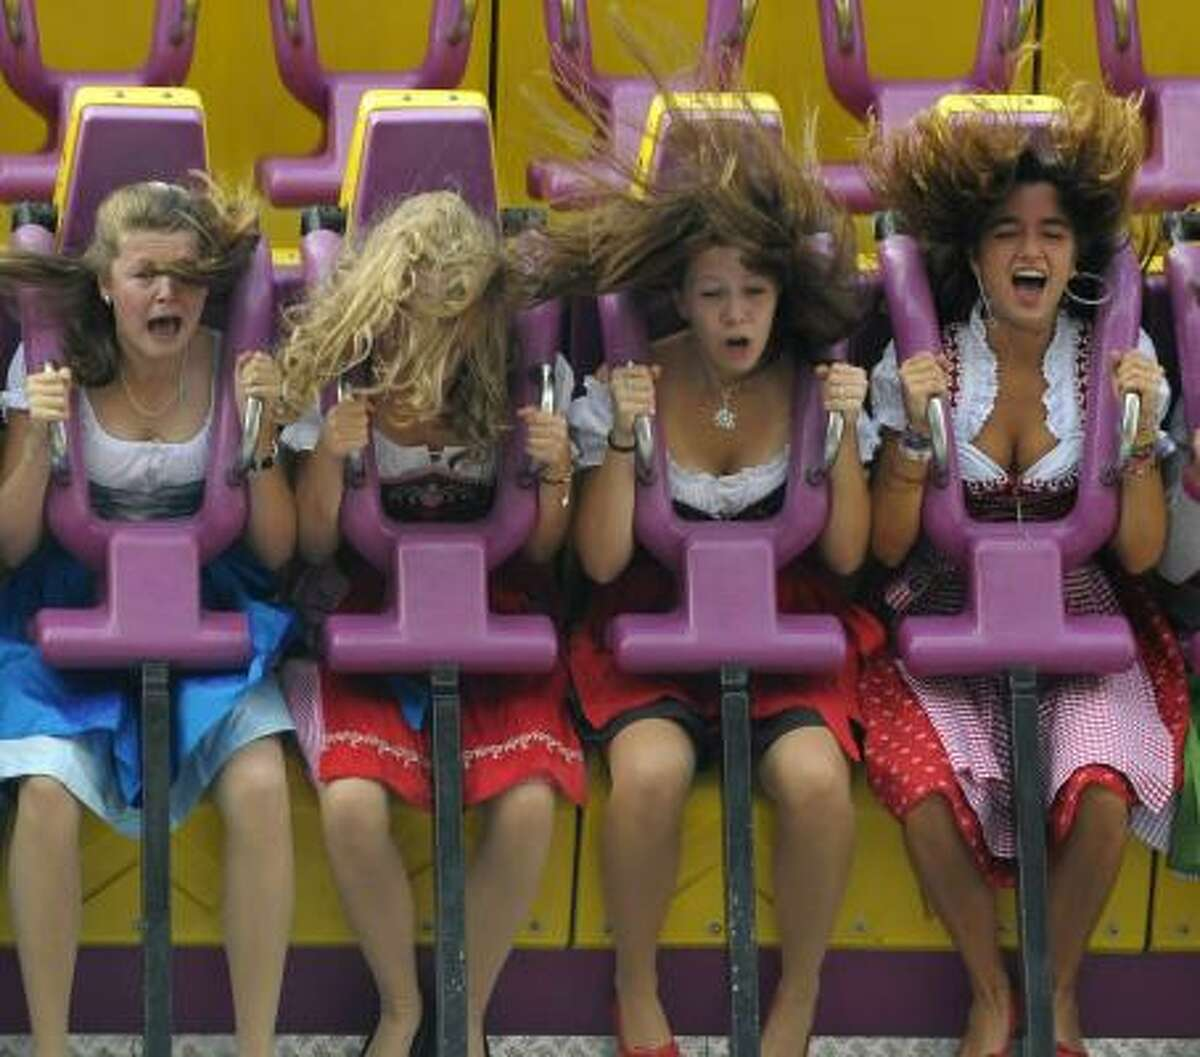 Girls in traditional Bavarian Dirndl clothes sit in a fairground ride at the Theresienwiese fairground of the Oktoberfest beer festival in Munich, southern Germany.